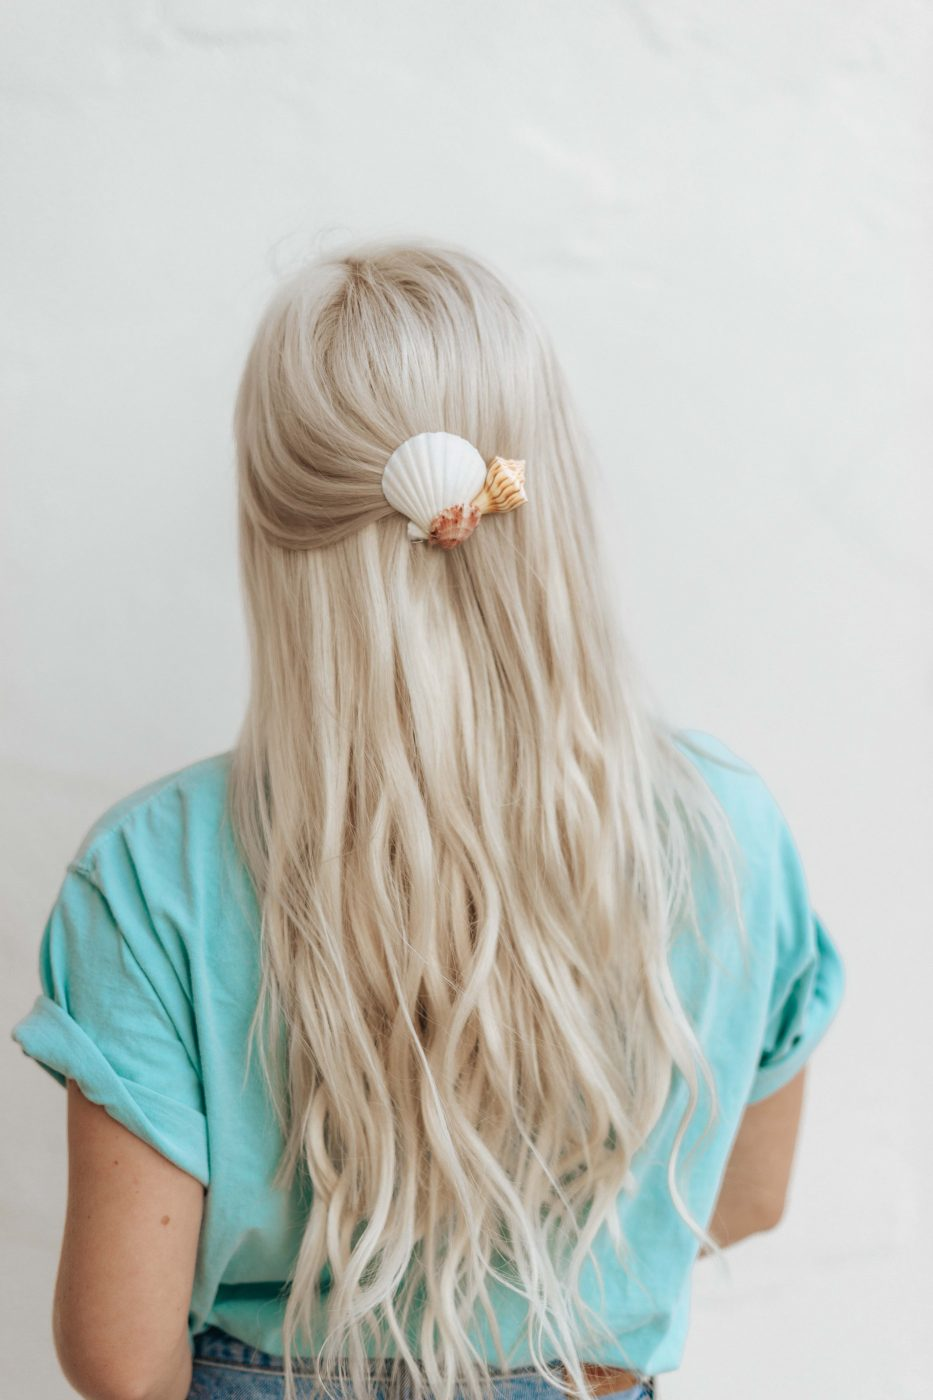 DIY Seashell Hair Clip - Sweet Teal by Jenny Bess